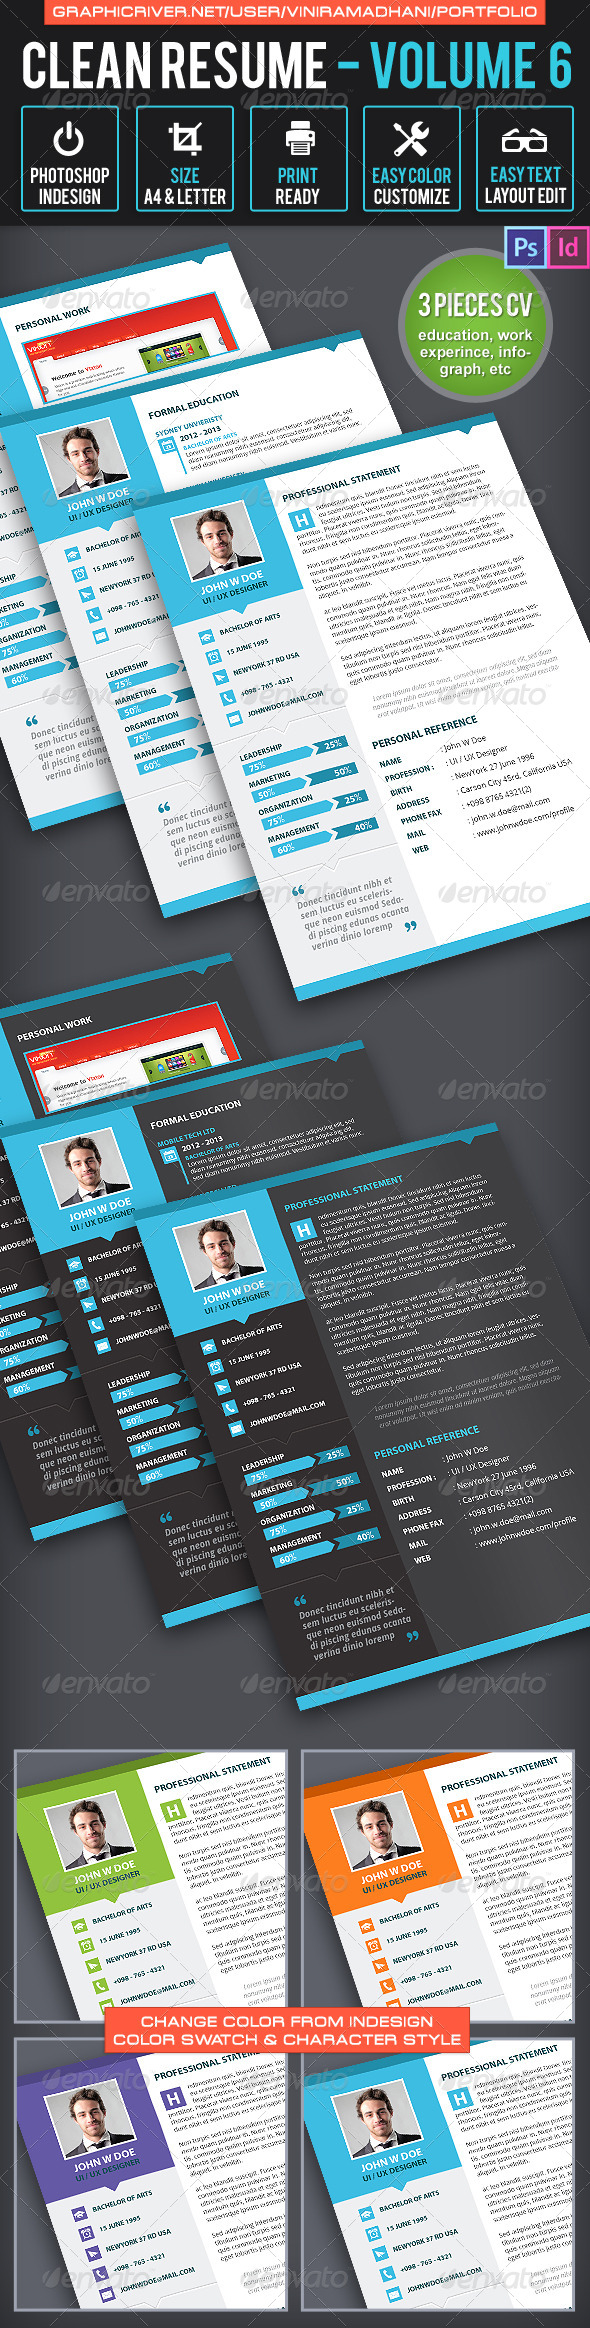 GraphicRiver Clean Resume Volume 6 6518686